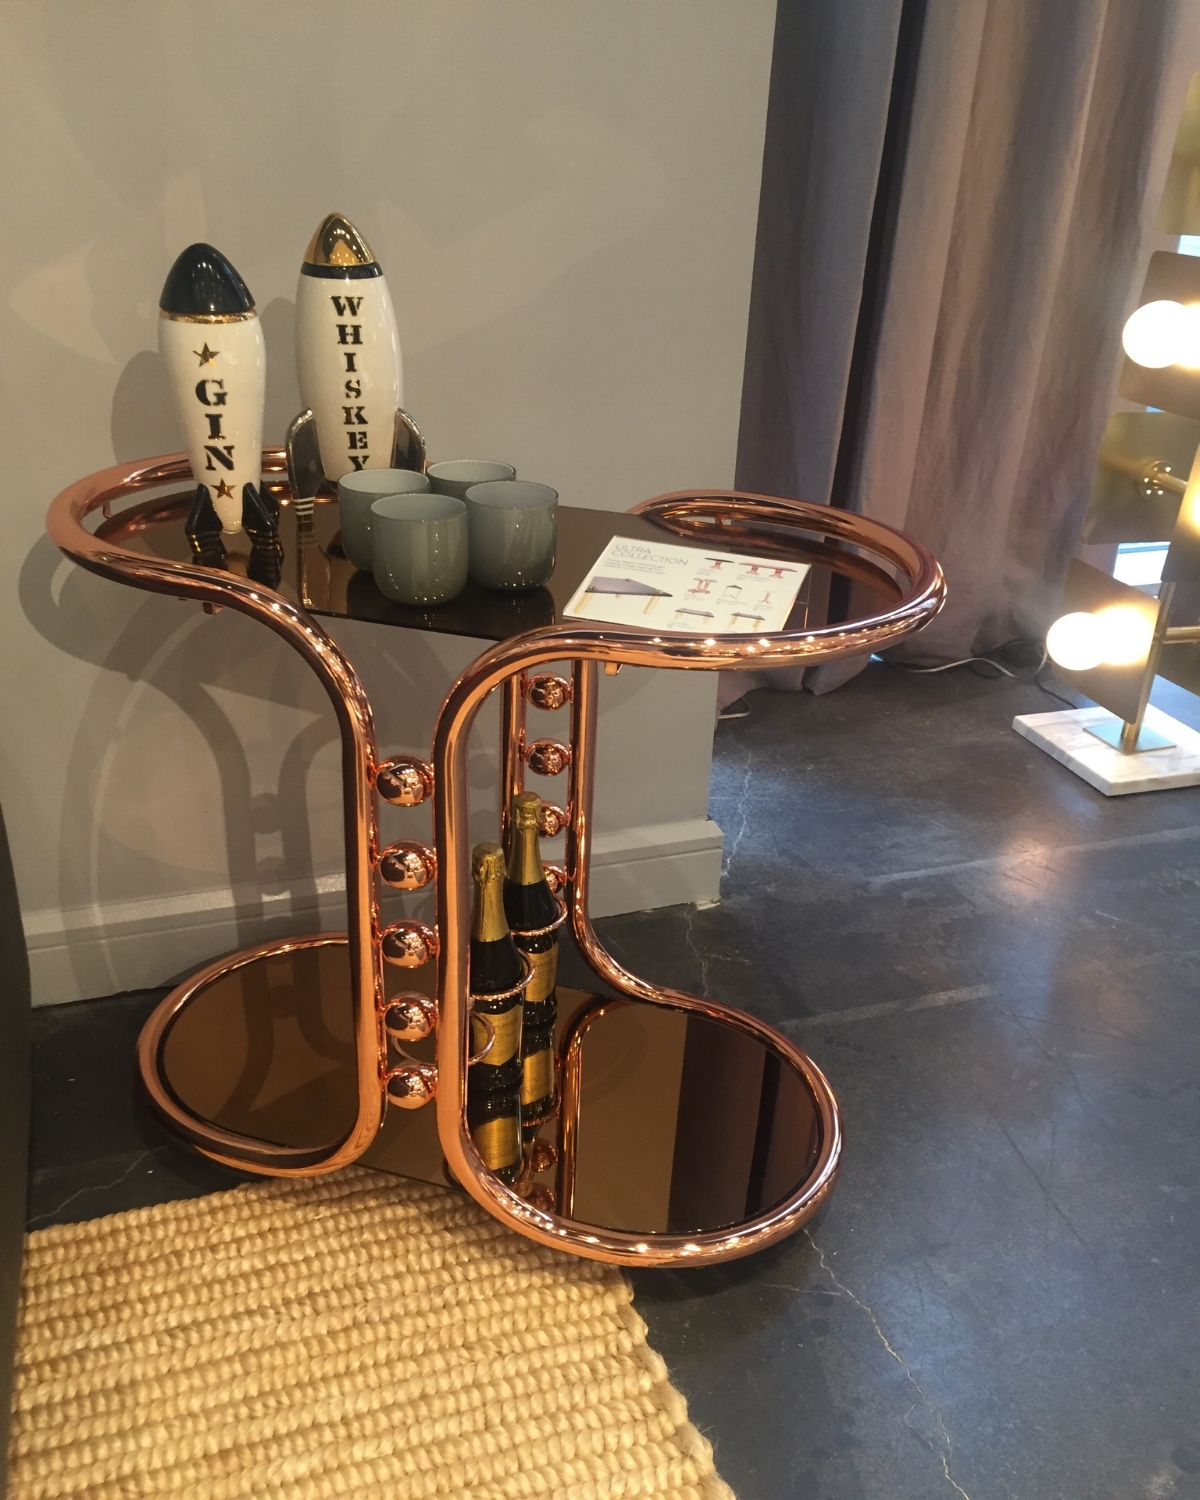 The ultra bar cart   is the most interesting cart I've seen in awhile and I'm loving the retro-vibe bronze finish